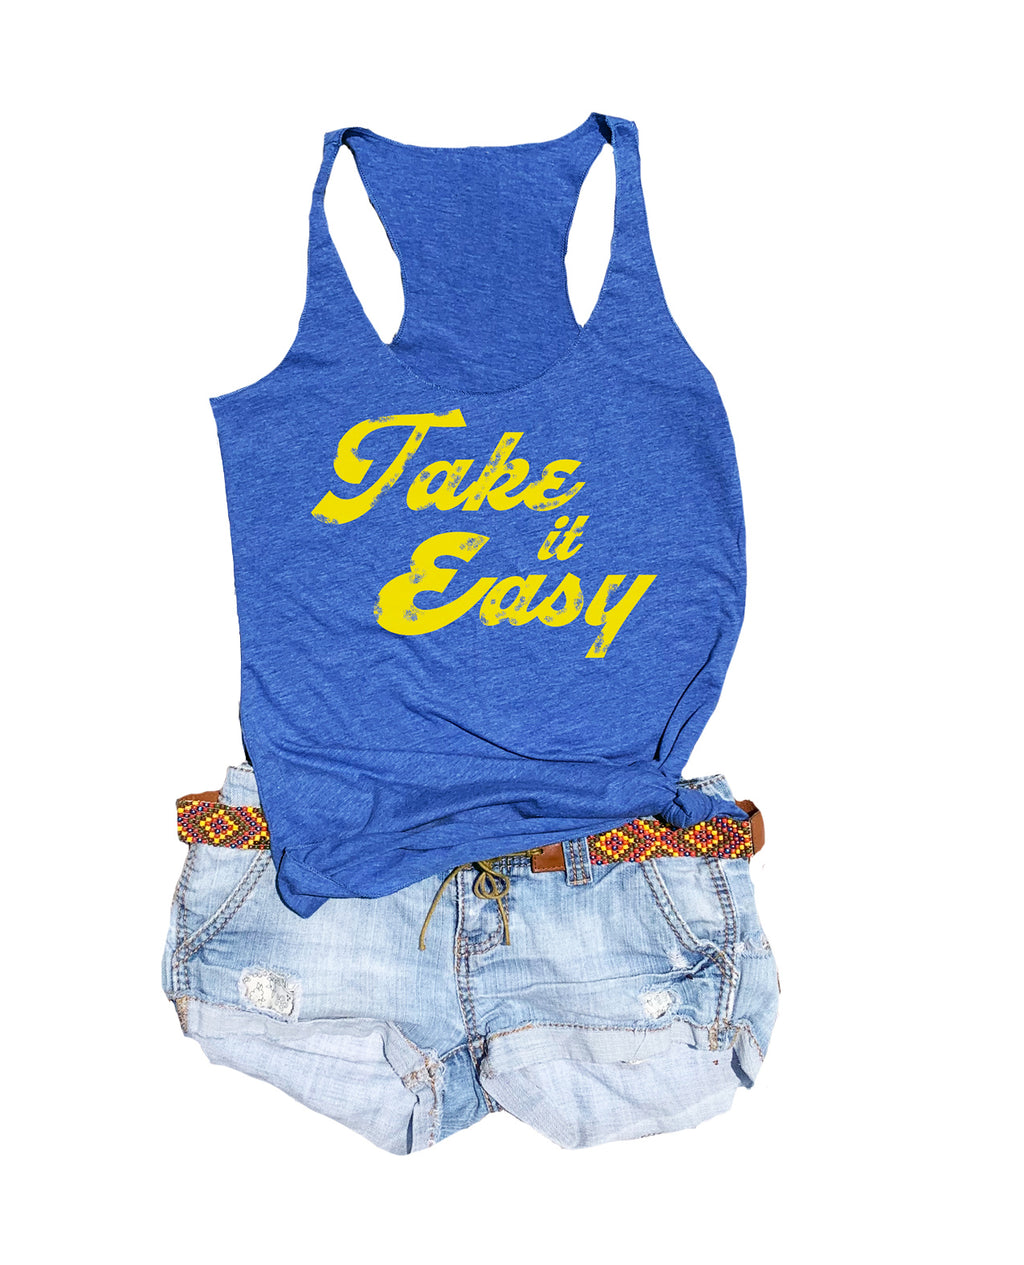 TAKE IT EASY TANK TOP